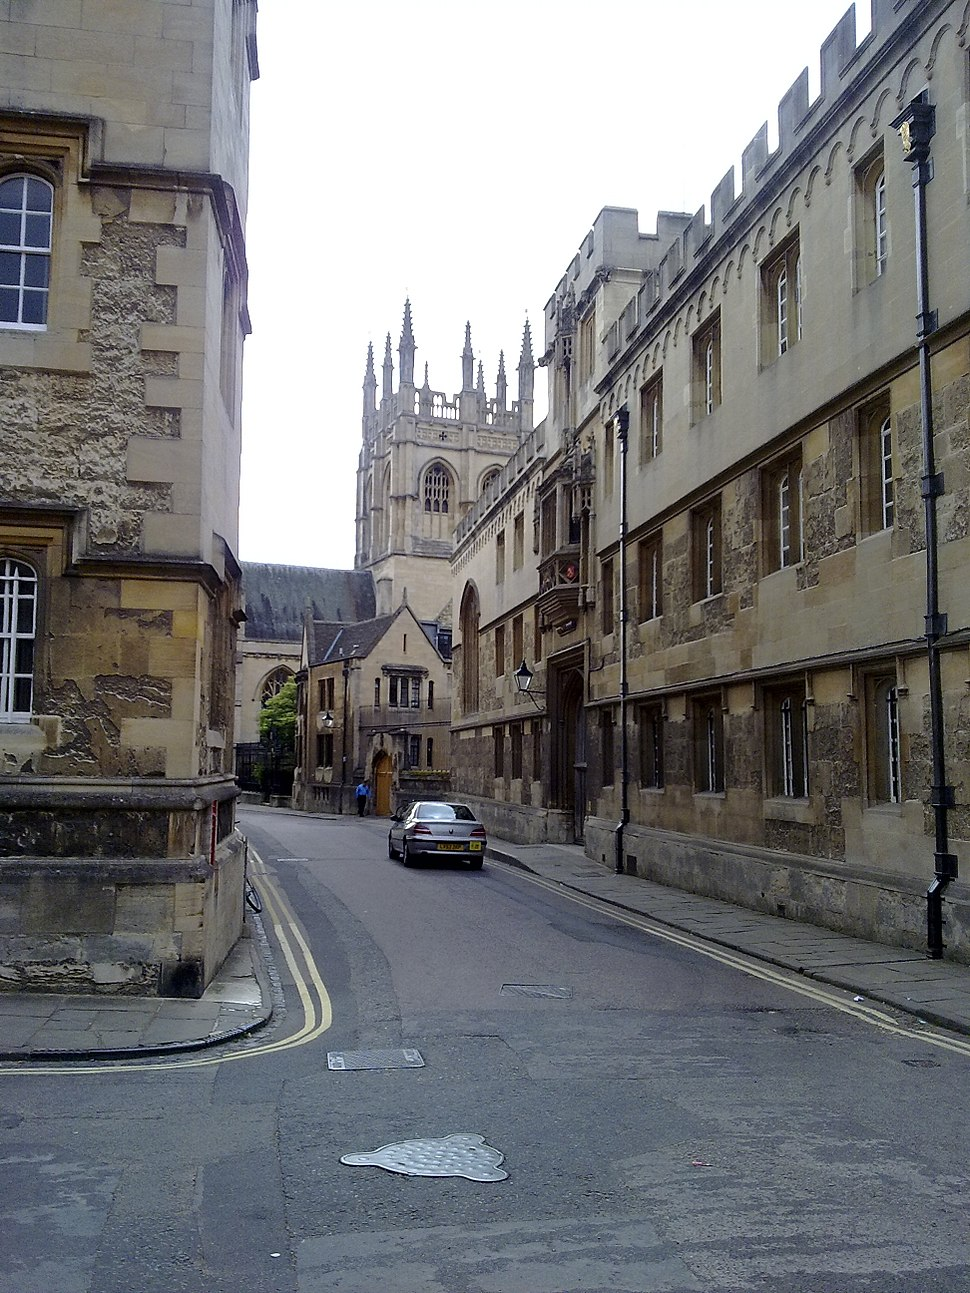 Merton Street looking towards Merton College